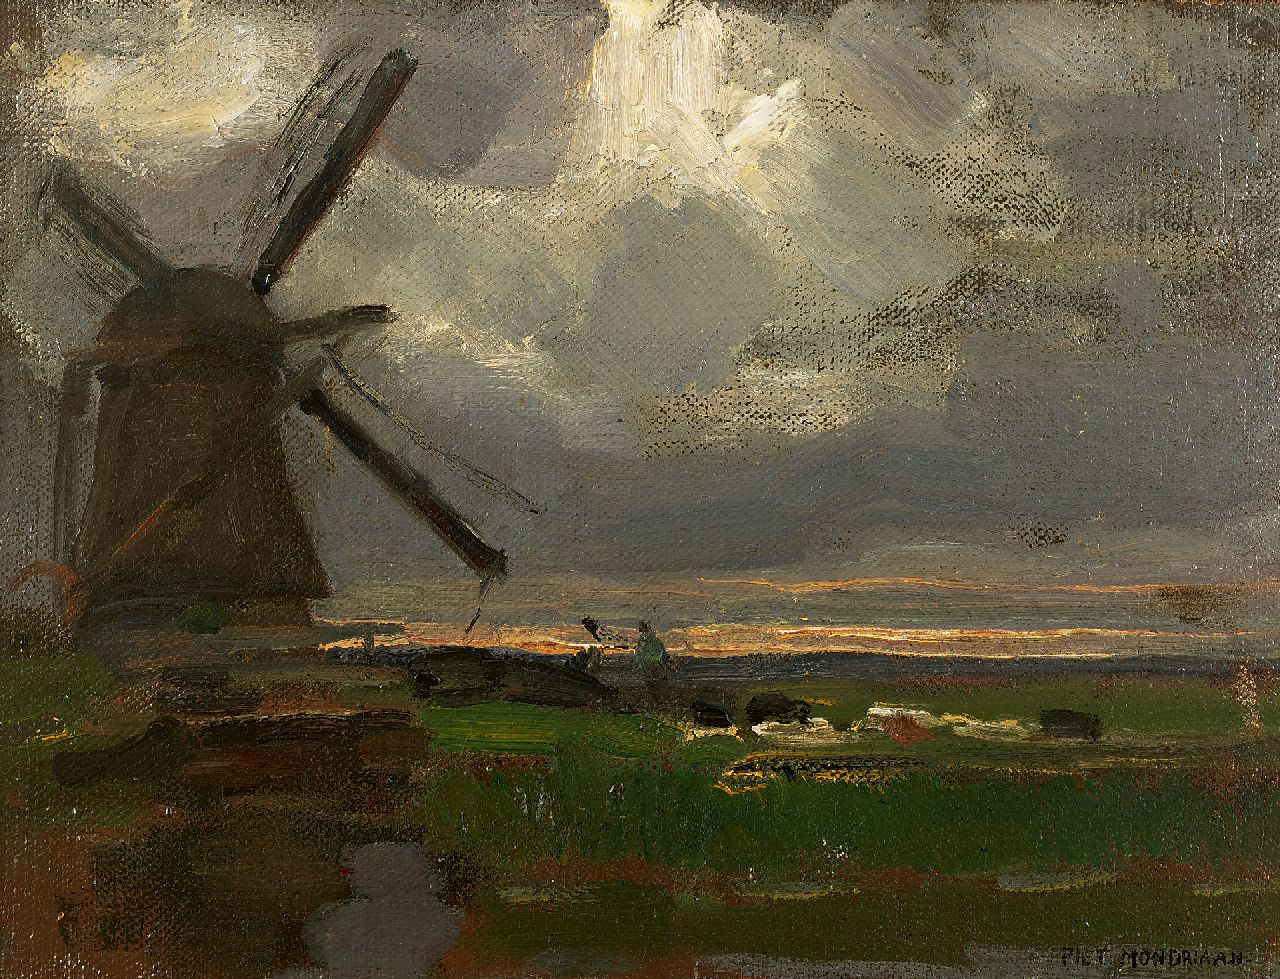 Mondriaan P.C.  | Pieter Cornelis 'Piet' Mondriaan, The 'Broekzijdse Molen' along the Gein, oil on canvas laid down on panel 34.6 x 46.3 cm, signed l.r. and painted ca. 1905